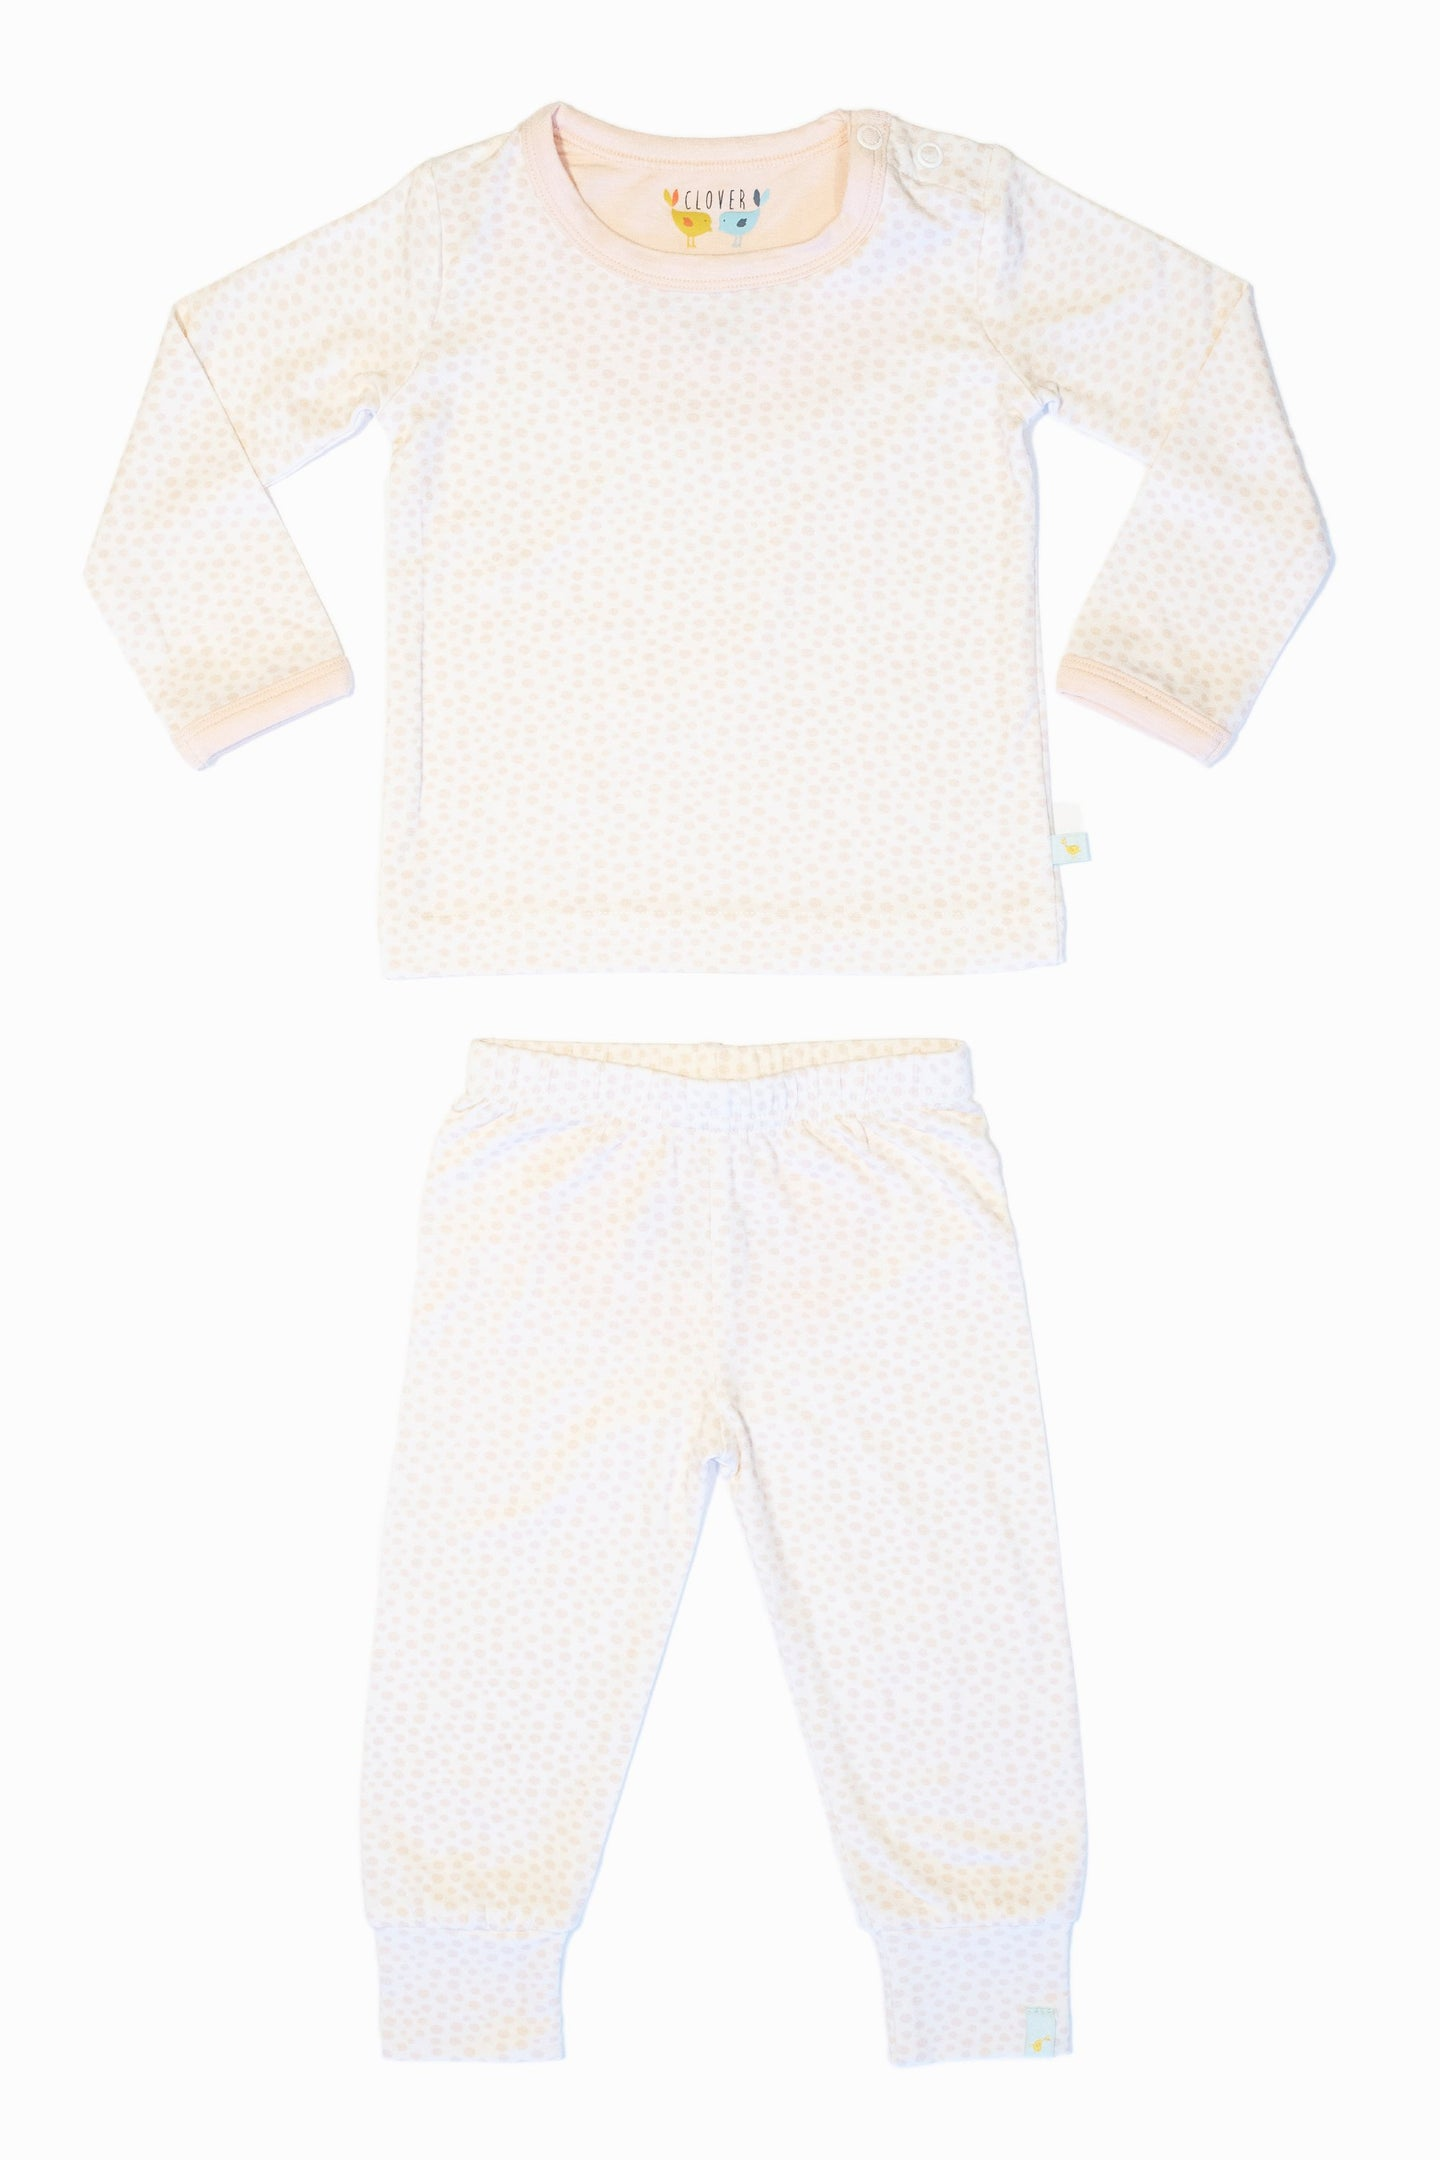 CloverBamboo Dots Set Infant